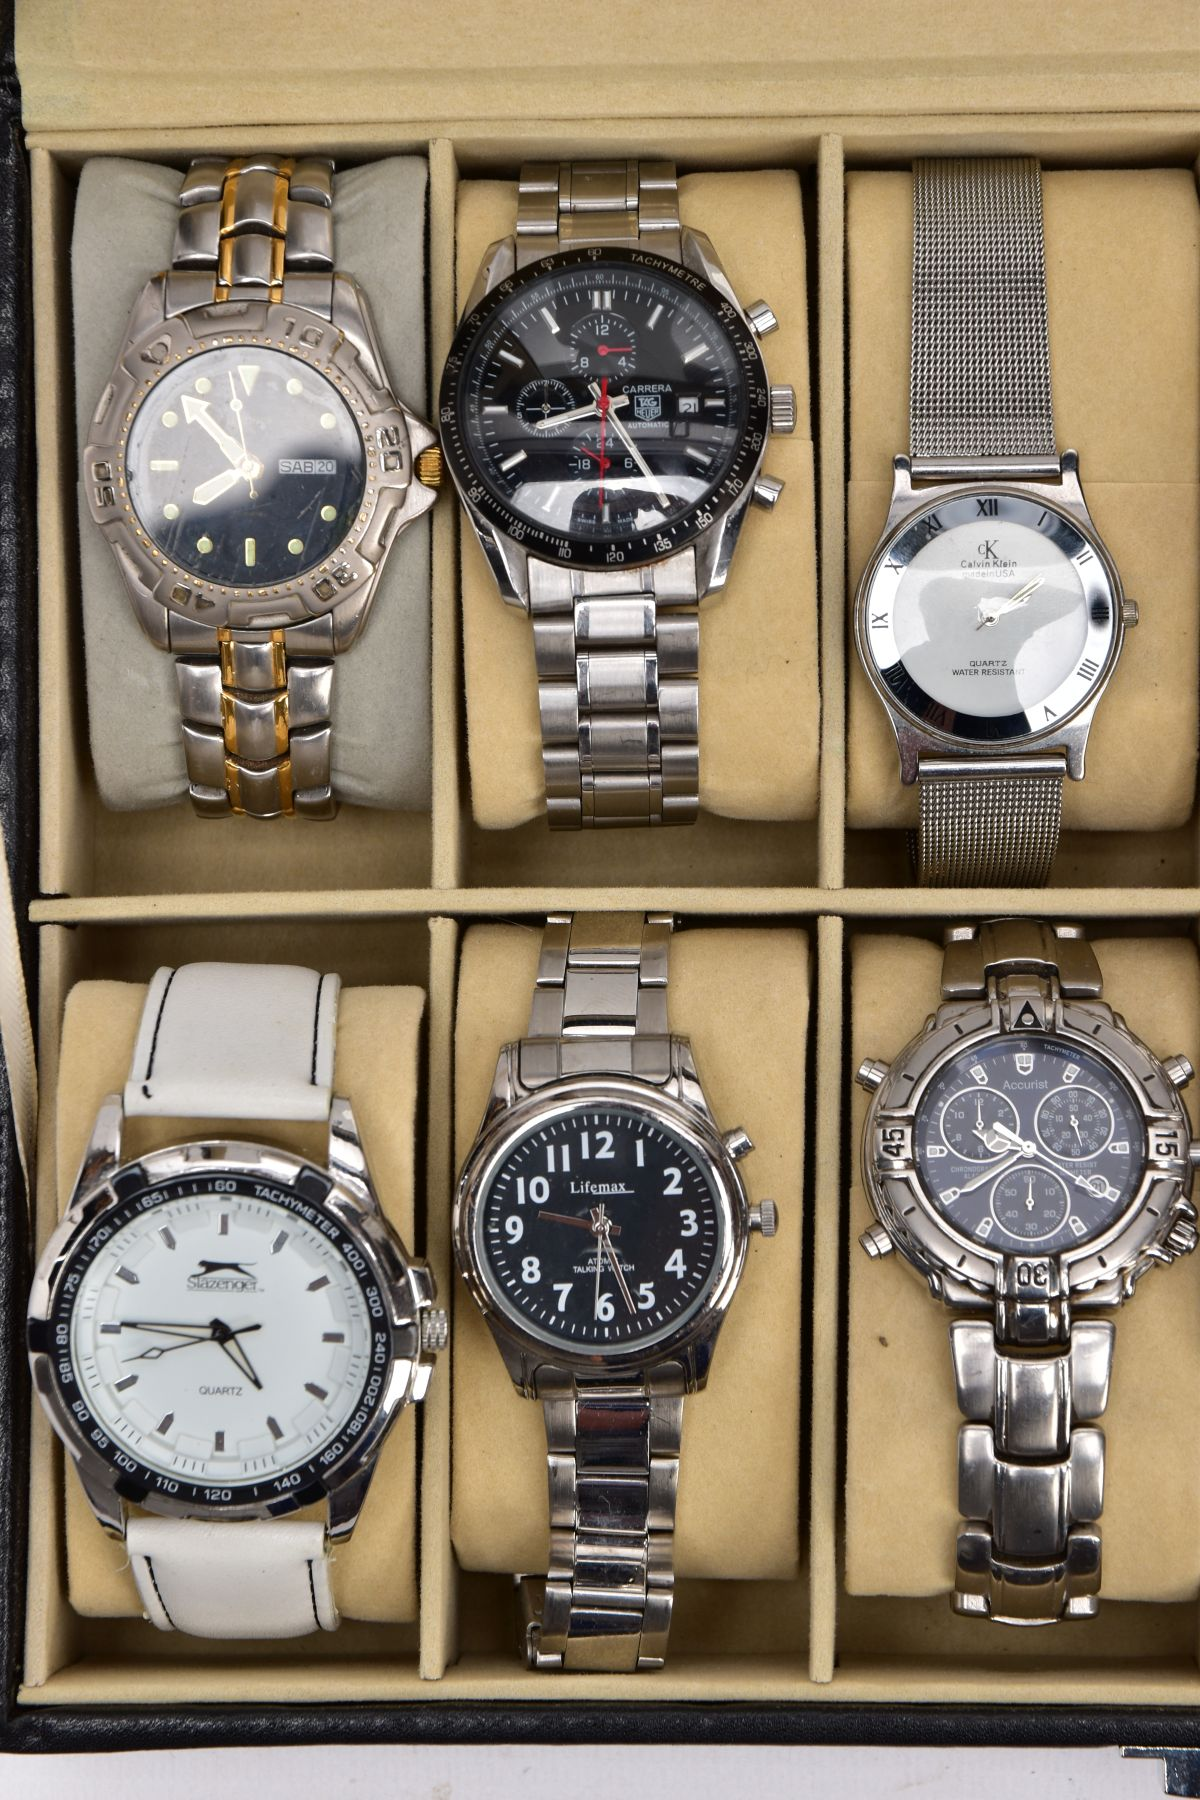 A WATCH DISPLAY CASE WITH WATCHES, a black and glass panelled watch display case with twelve watches - Image 3 of 4